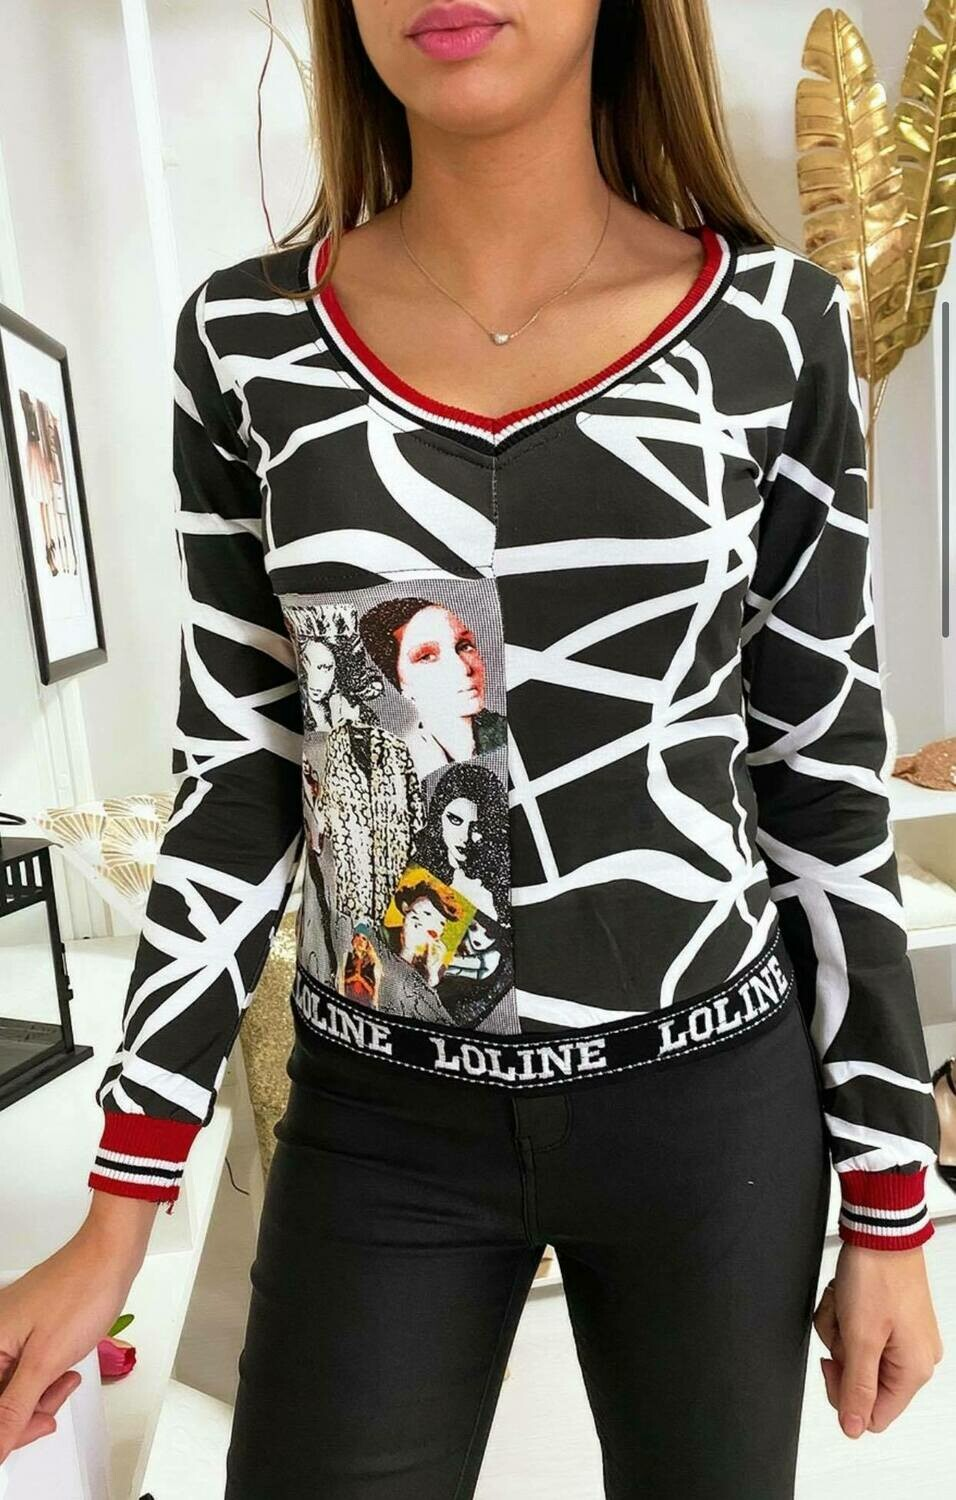 'Moulin' Slim Fit Top in Black & White with Graphics